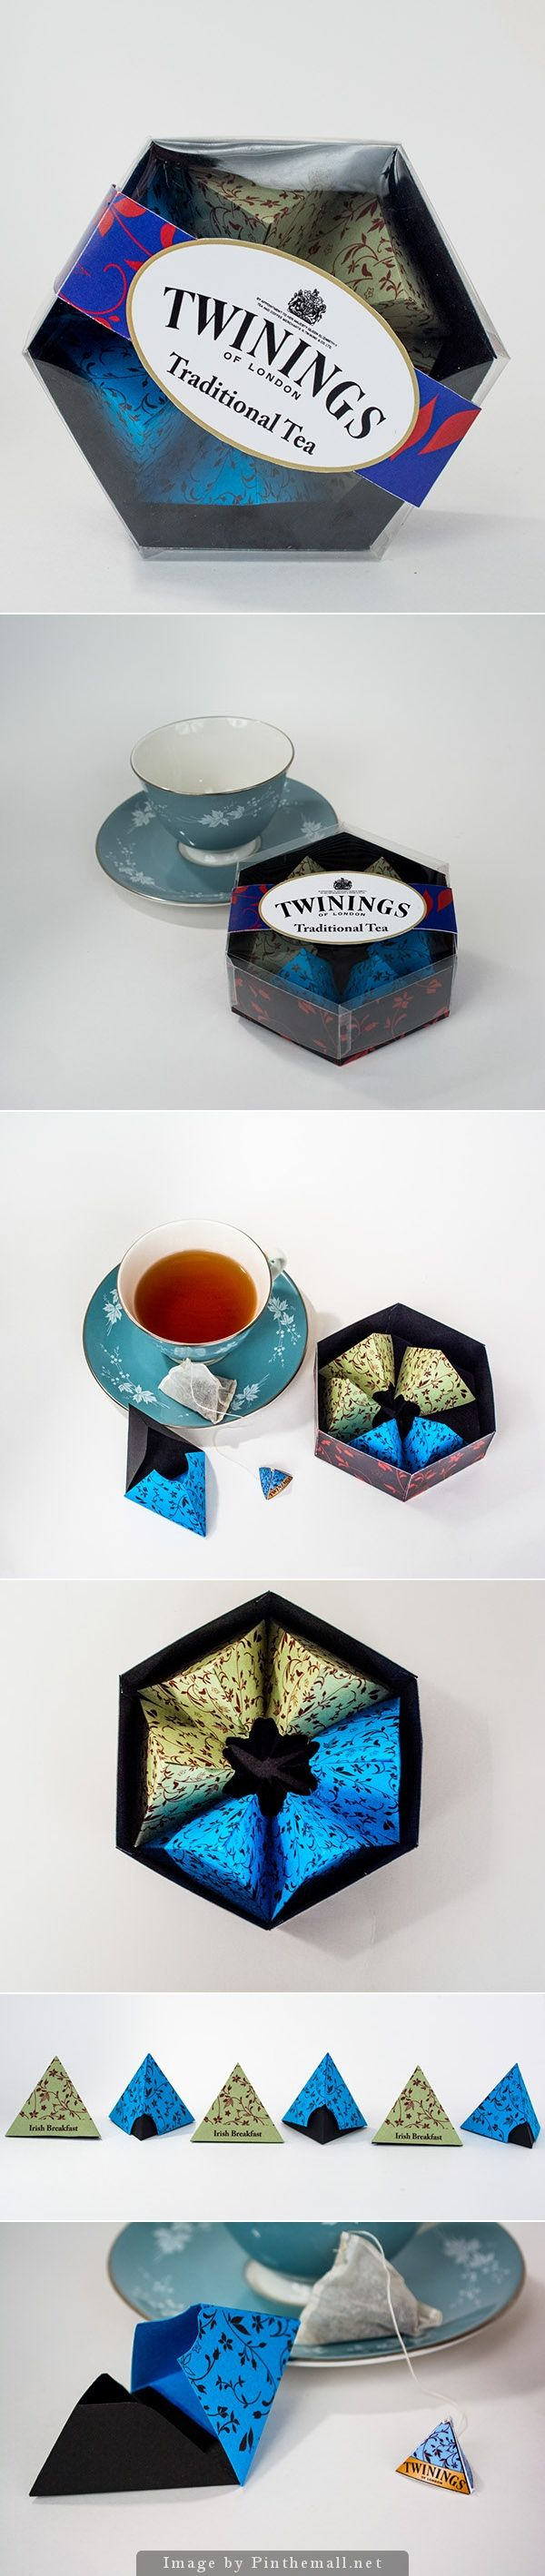 Twinnings Tea Gift Box by Natalie Macpherson. Pin curated by SFields99.